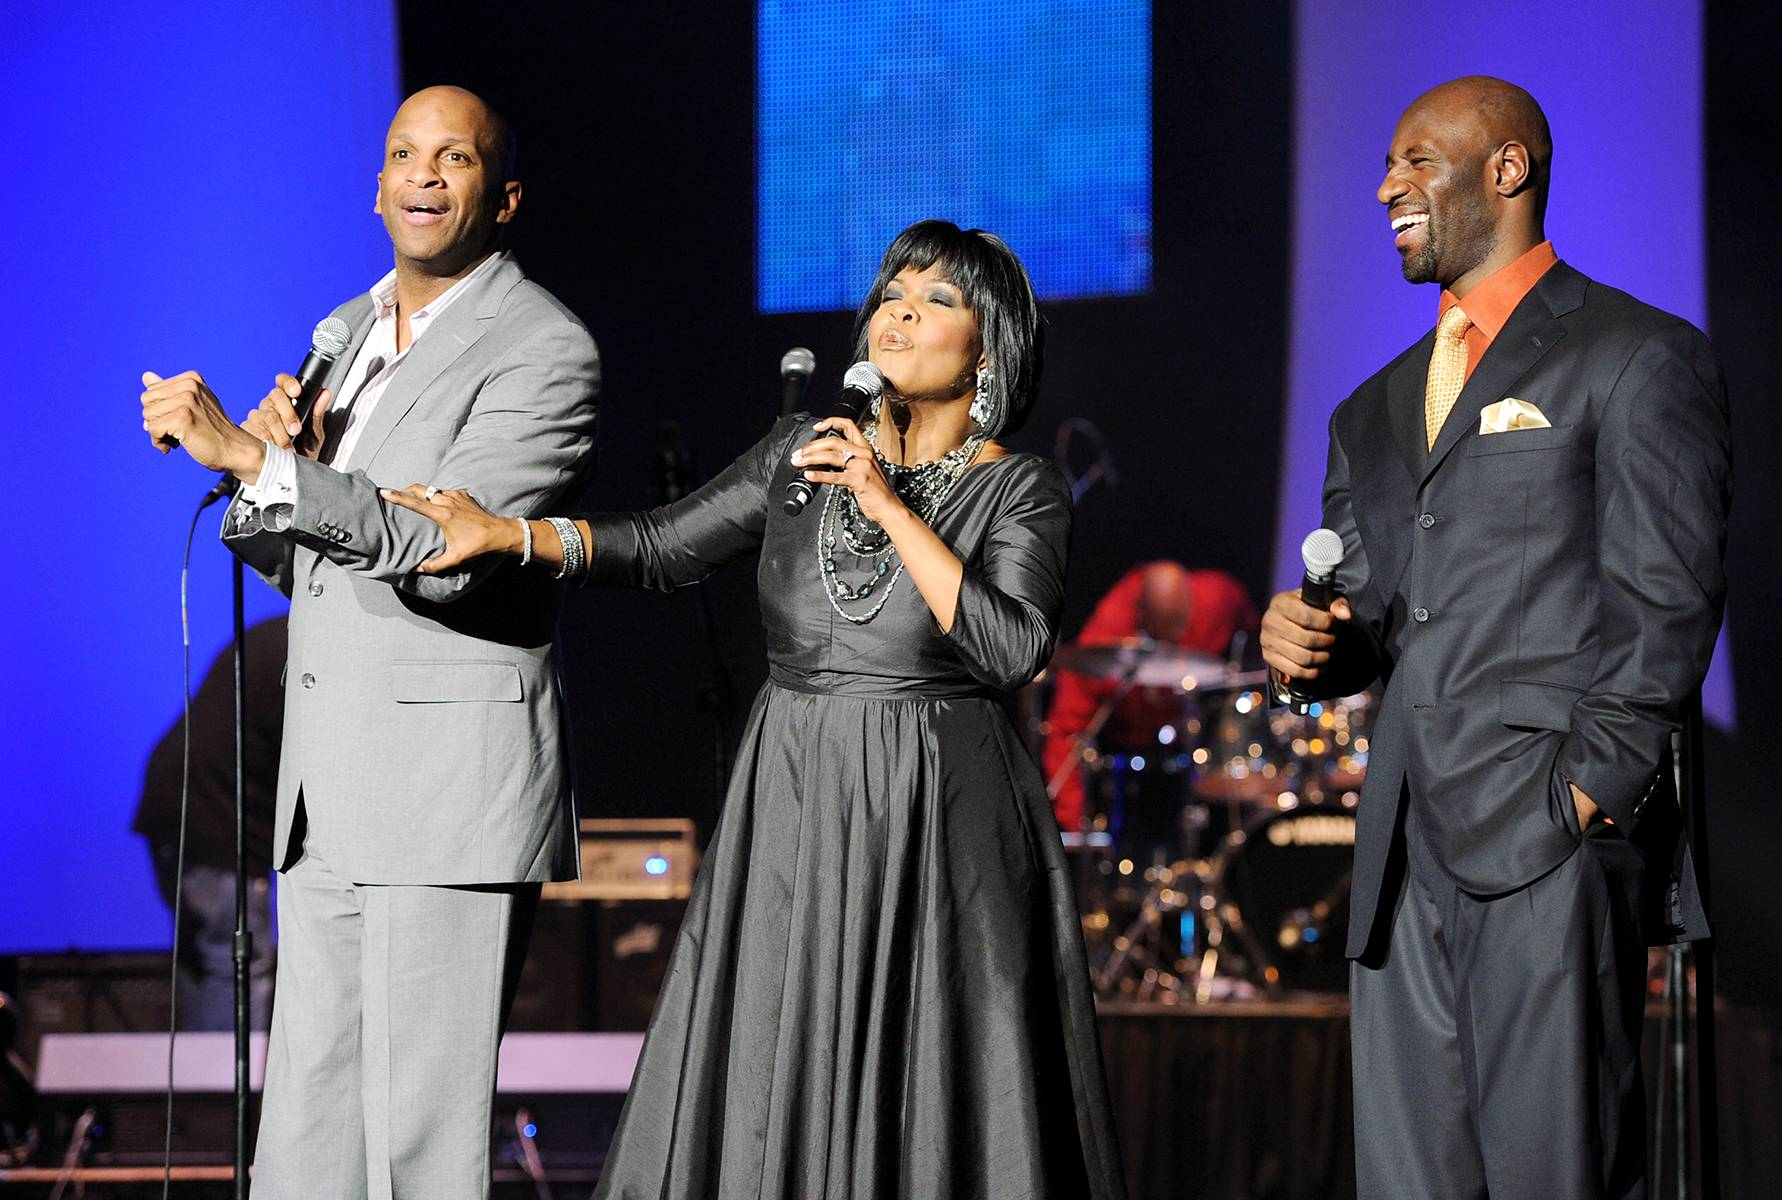 Lift Up the Name - Gospel artists Donnie McClurkin, Cece Winans and a guest hit the stage during the Super Bowl Gospel Celebration 2011 at Music Hall at Fair Park in Dallas. (Photo: Rick Diamond/Getty Images for Super Bowl Gospel Celebration 2011)